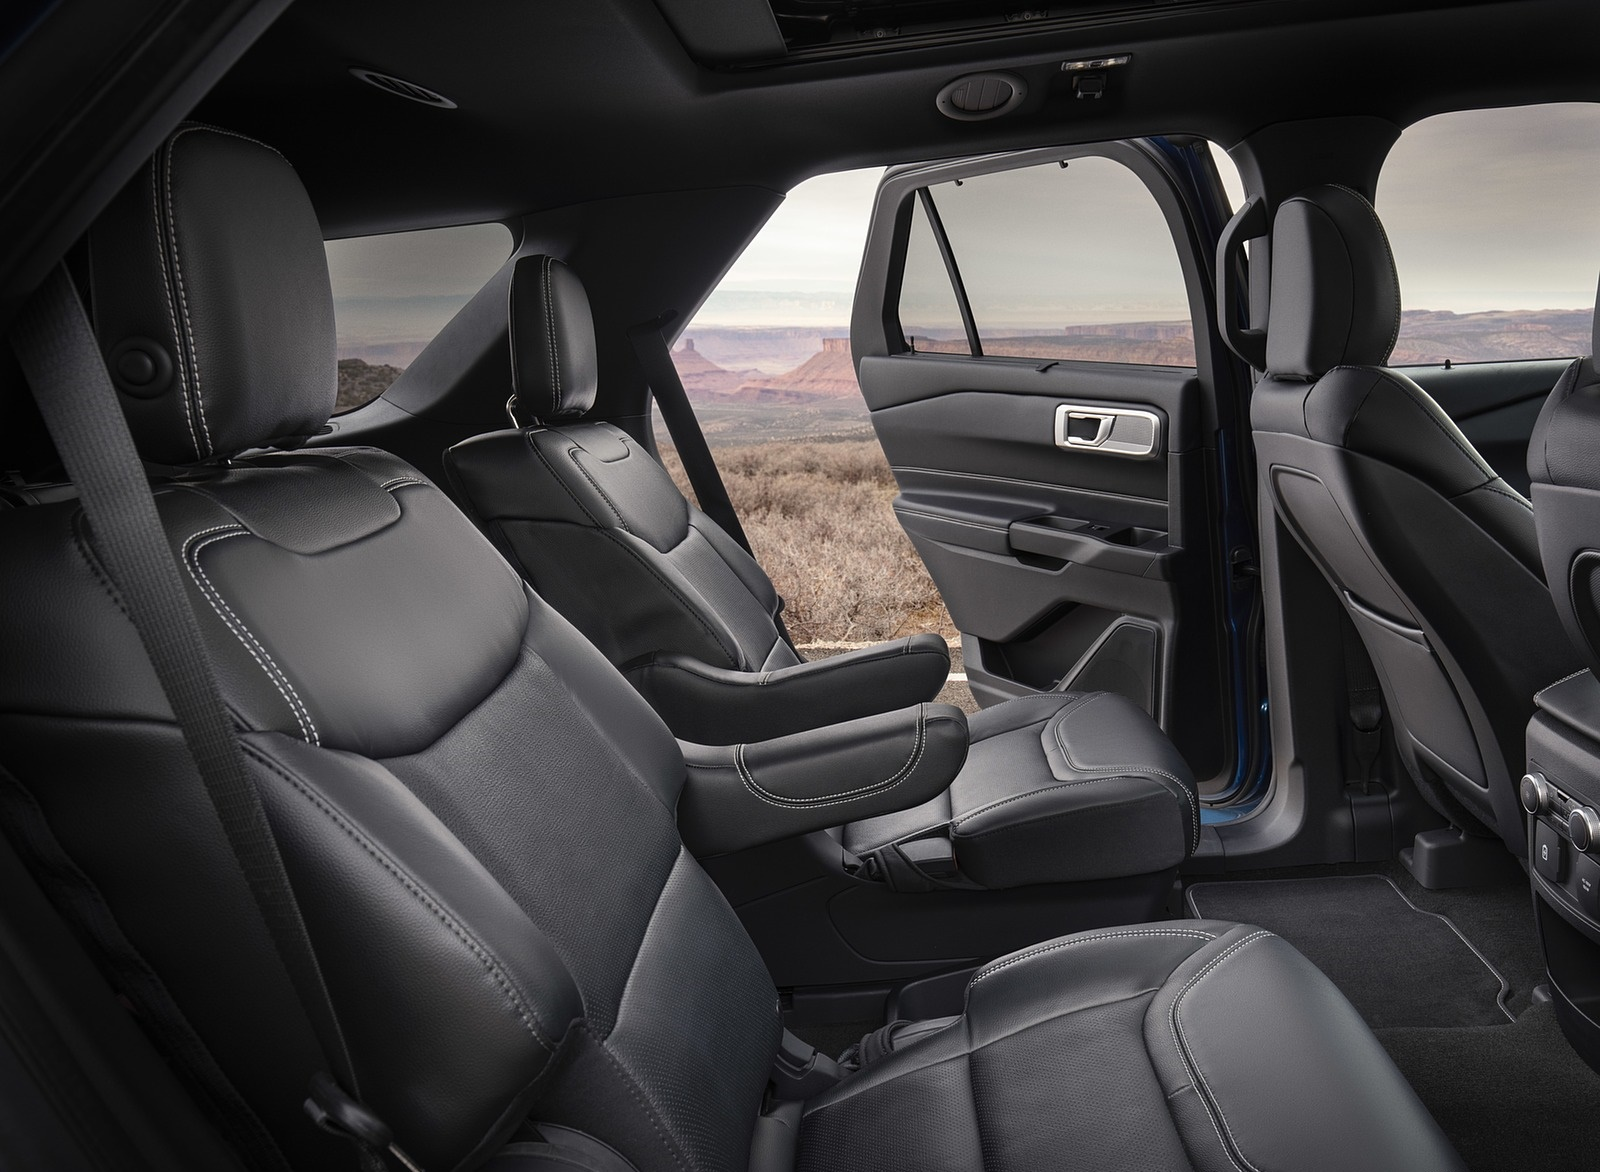 2020 Ford Explorer Interior Rear Seats Wallpaper